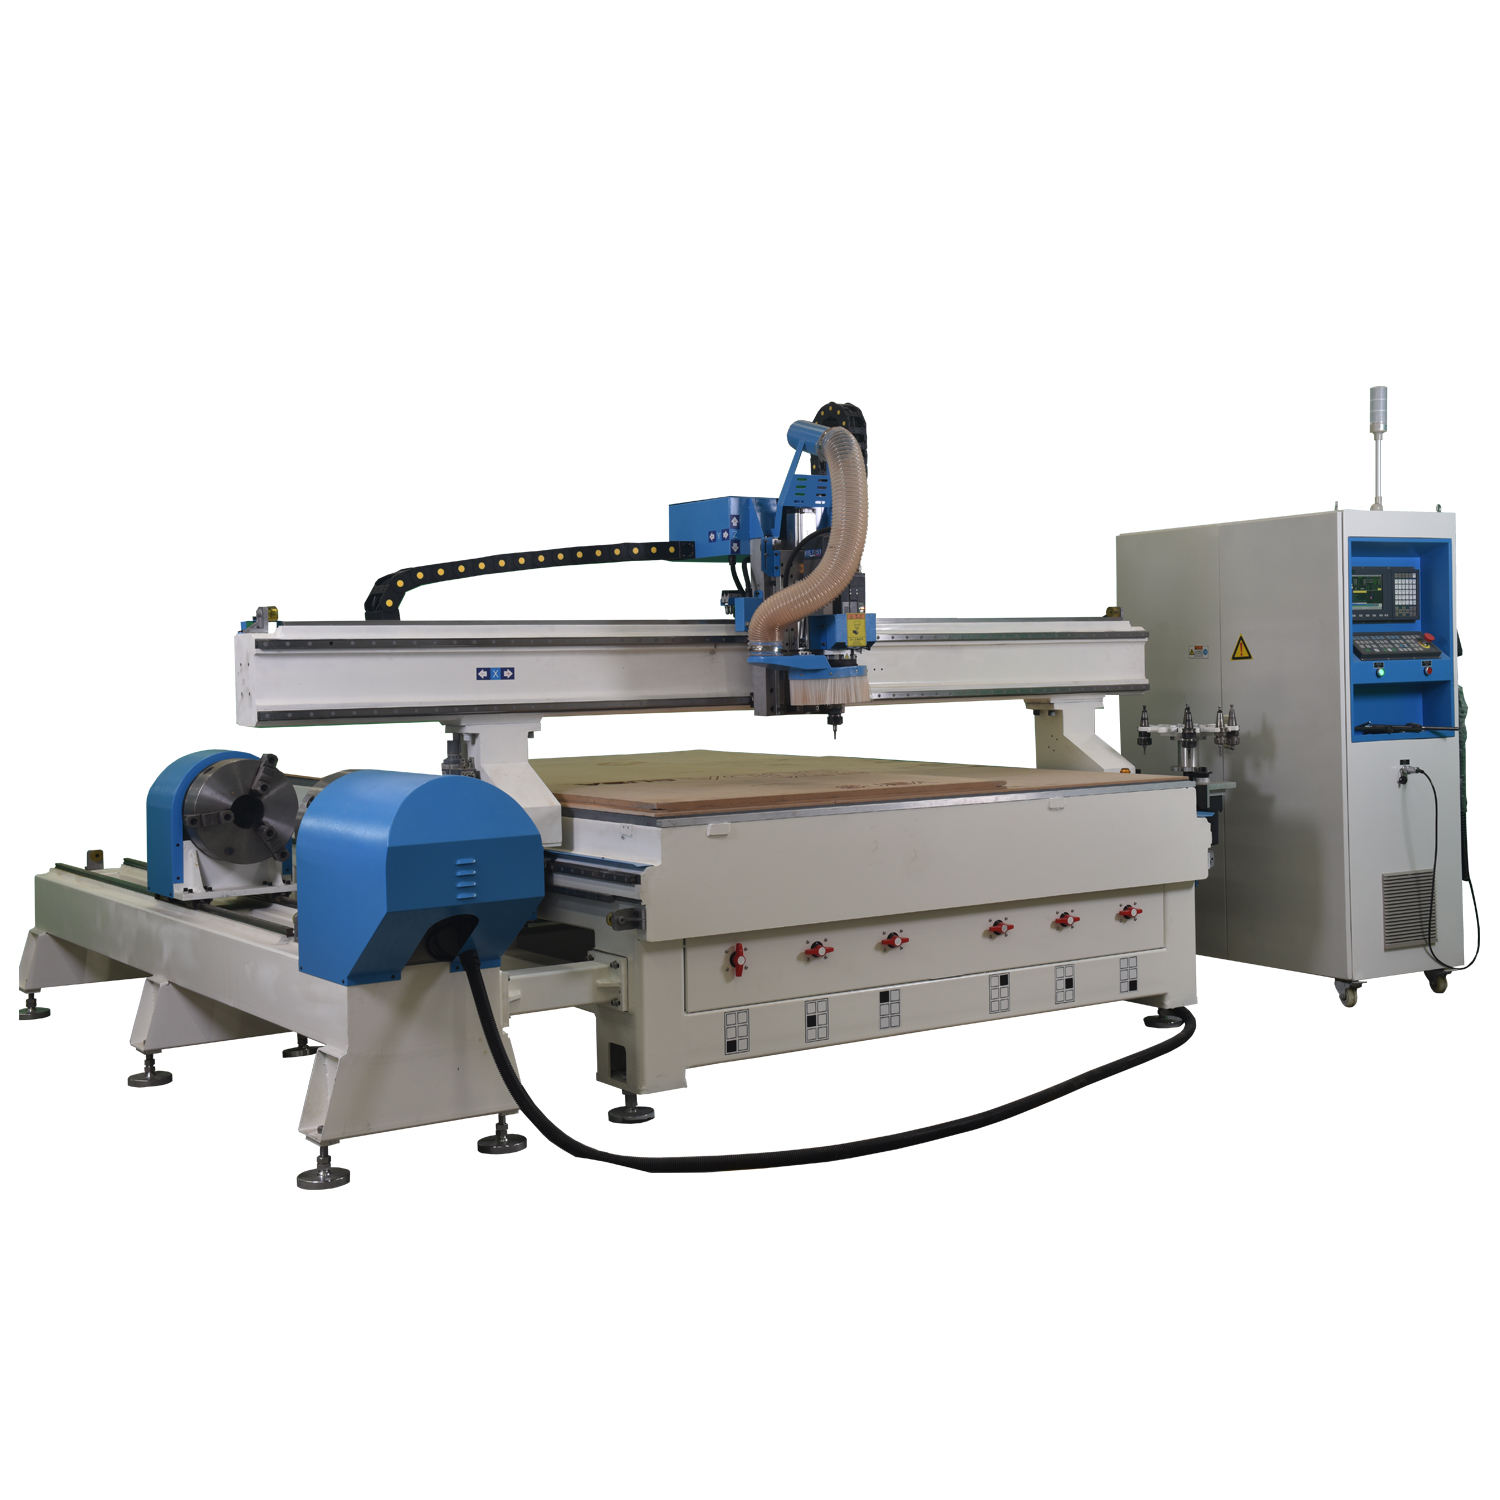 SUDA 1325 1530 2040 CNC Woodworking Machinery MDF Furniture Equipment Wood Milling Carving Cutting CNC Router Machine Price